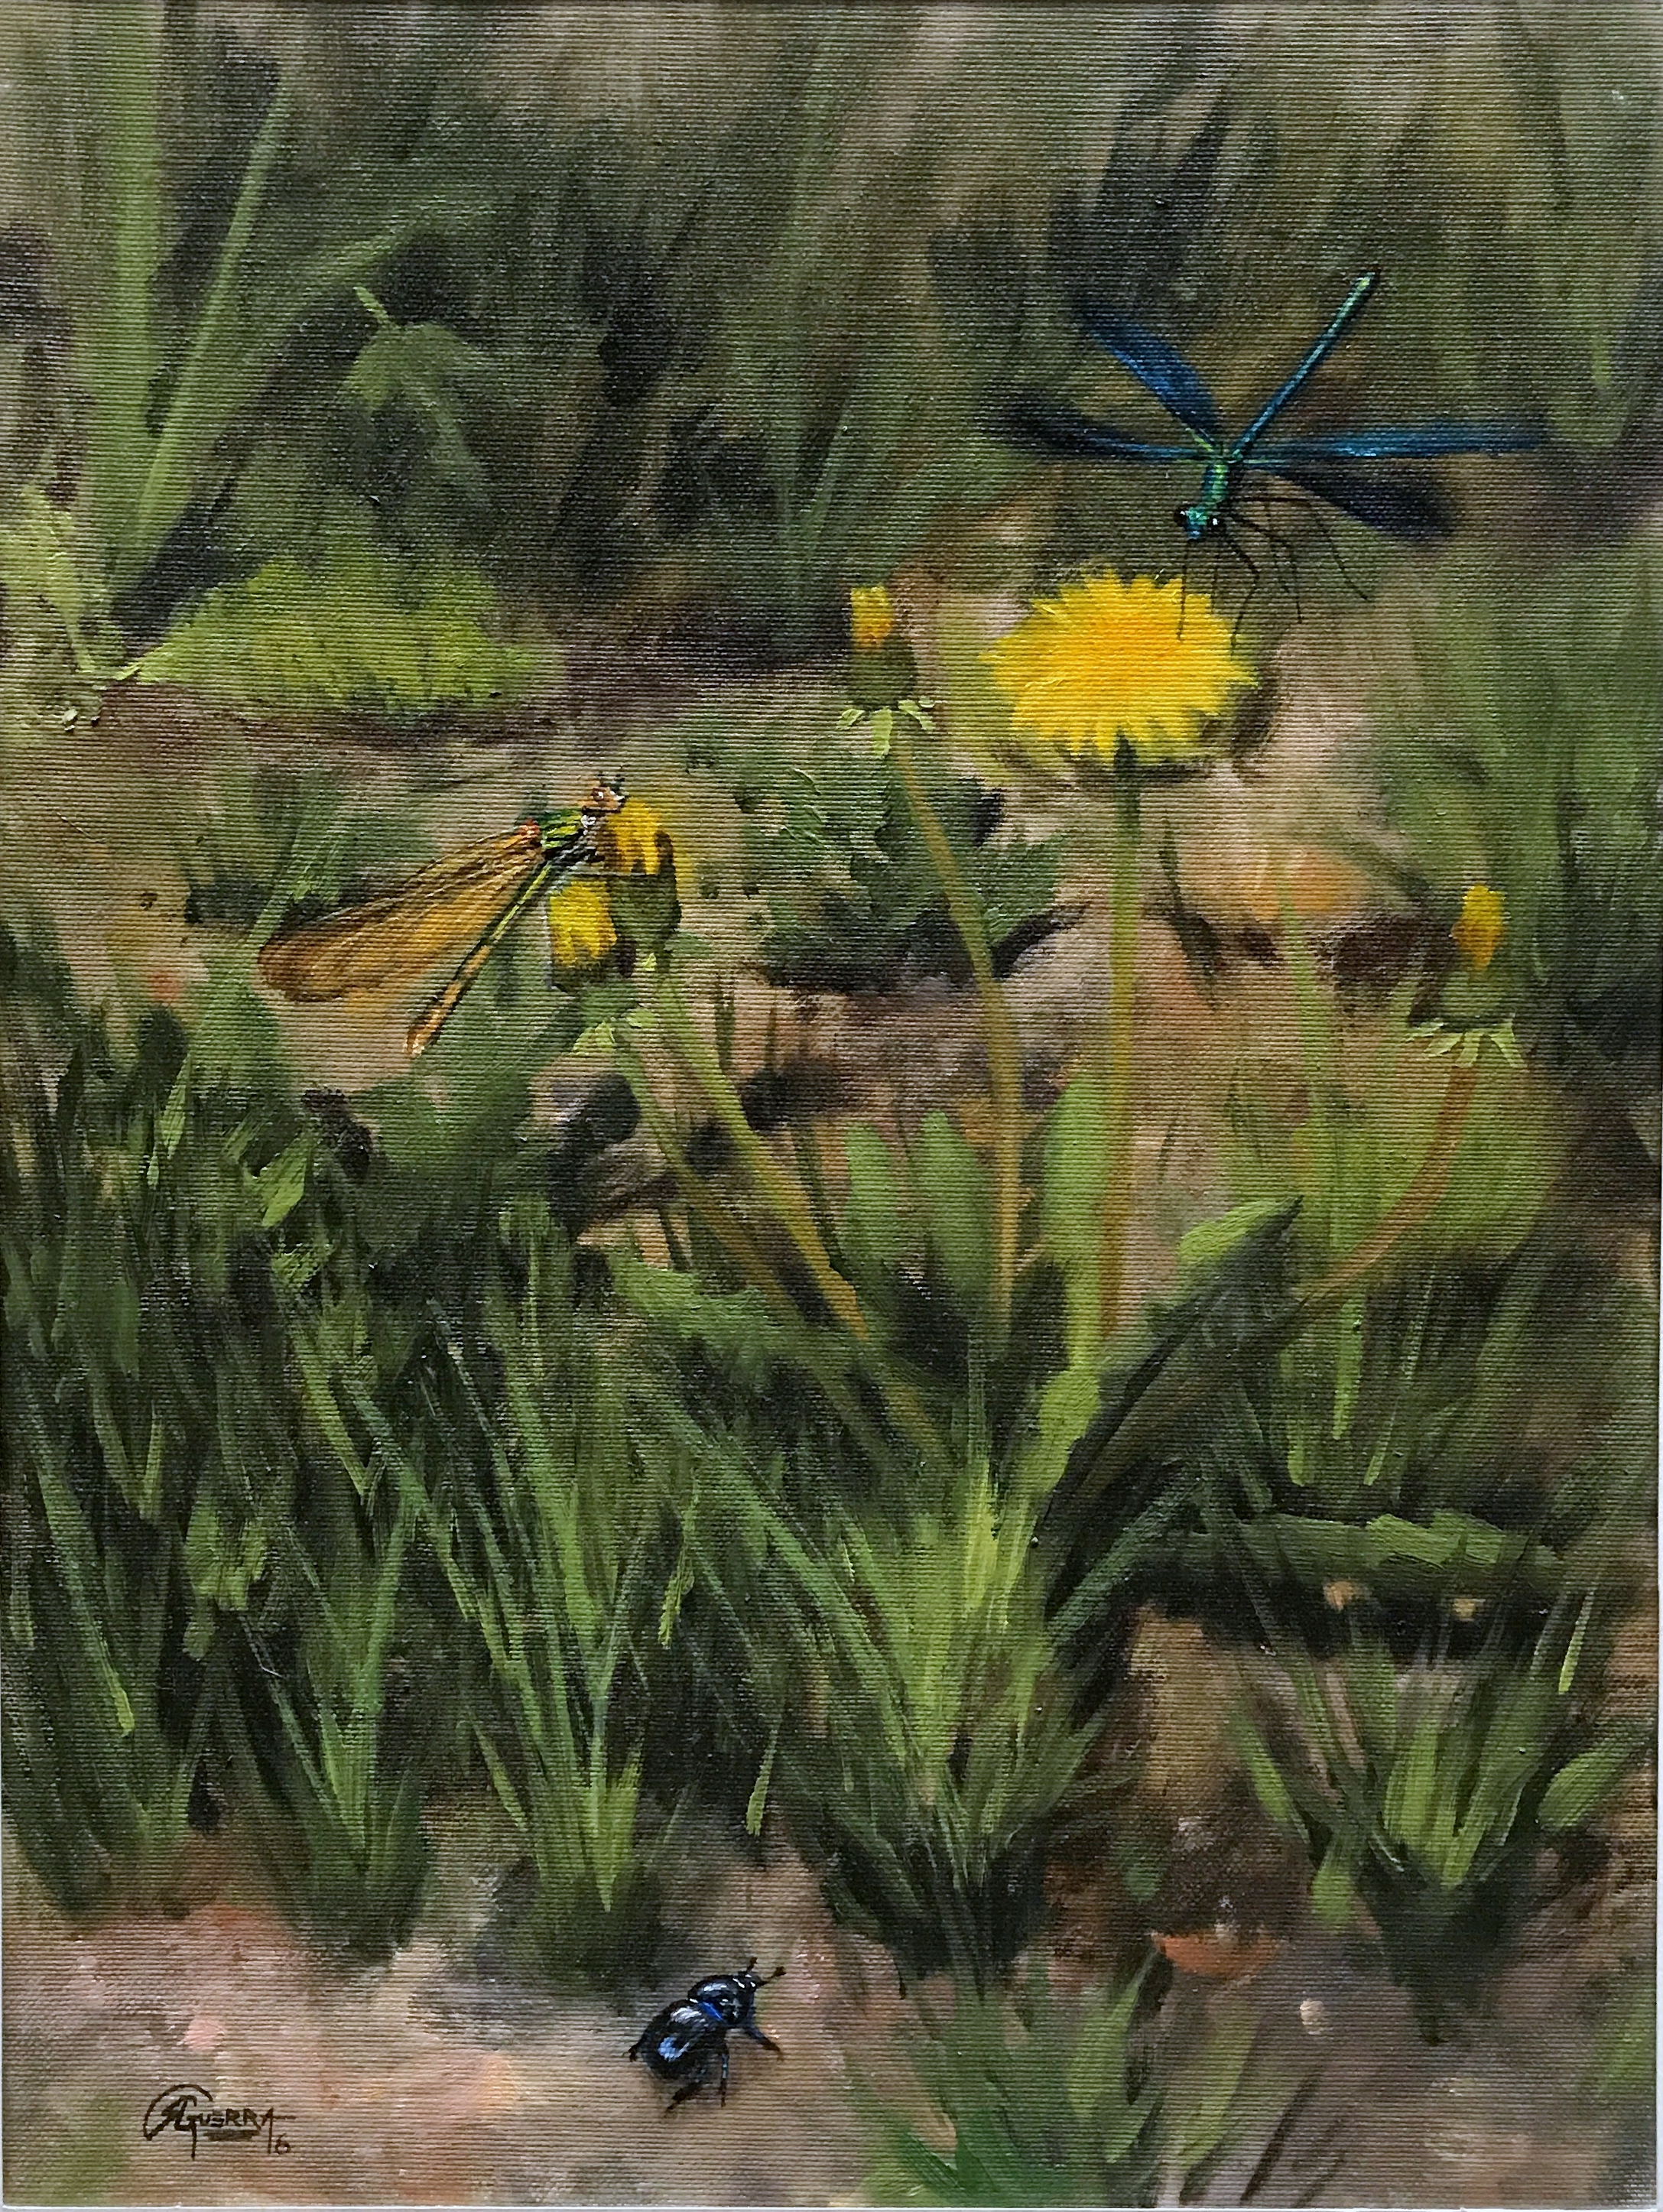 Dandelions and Dragonflies, Rafael Guerra